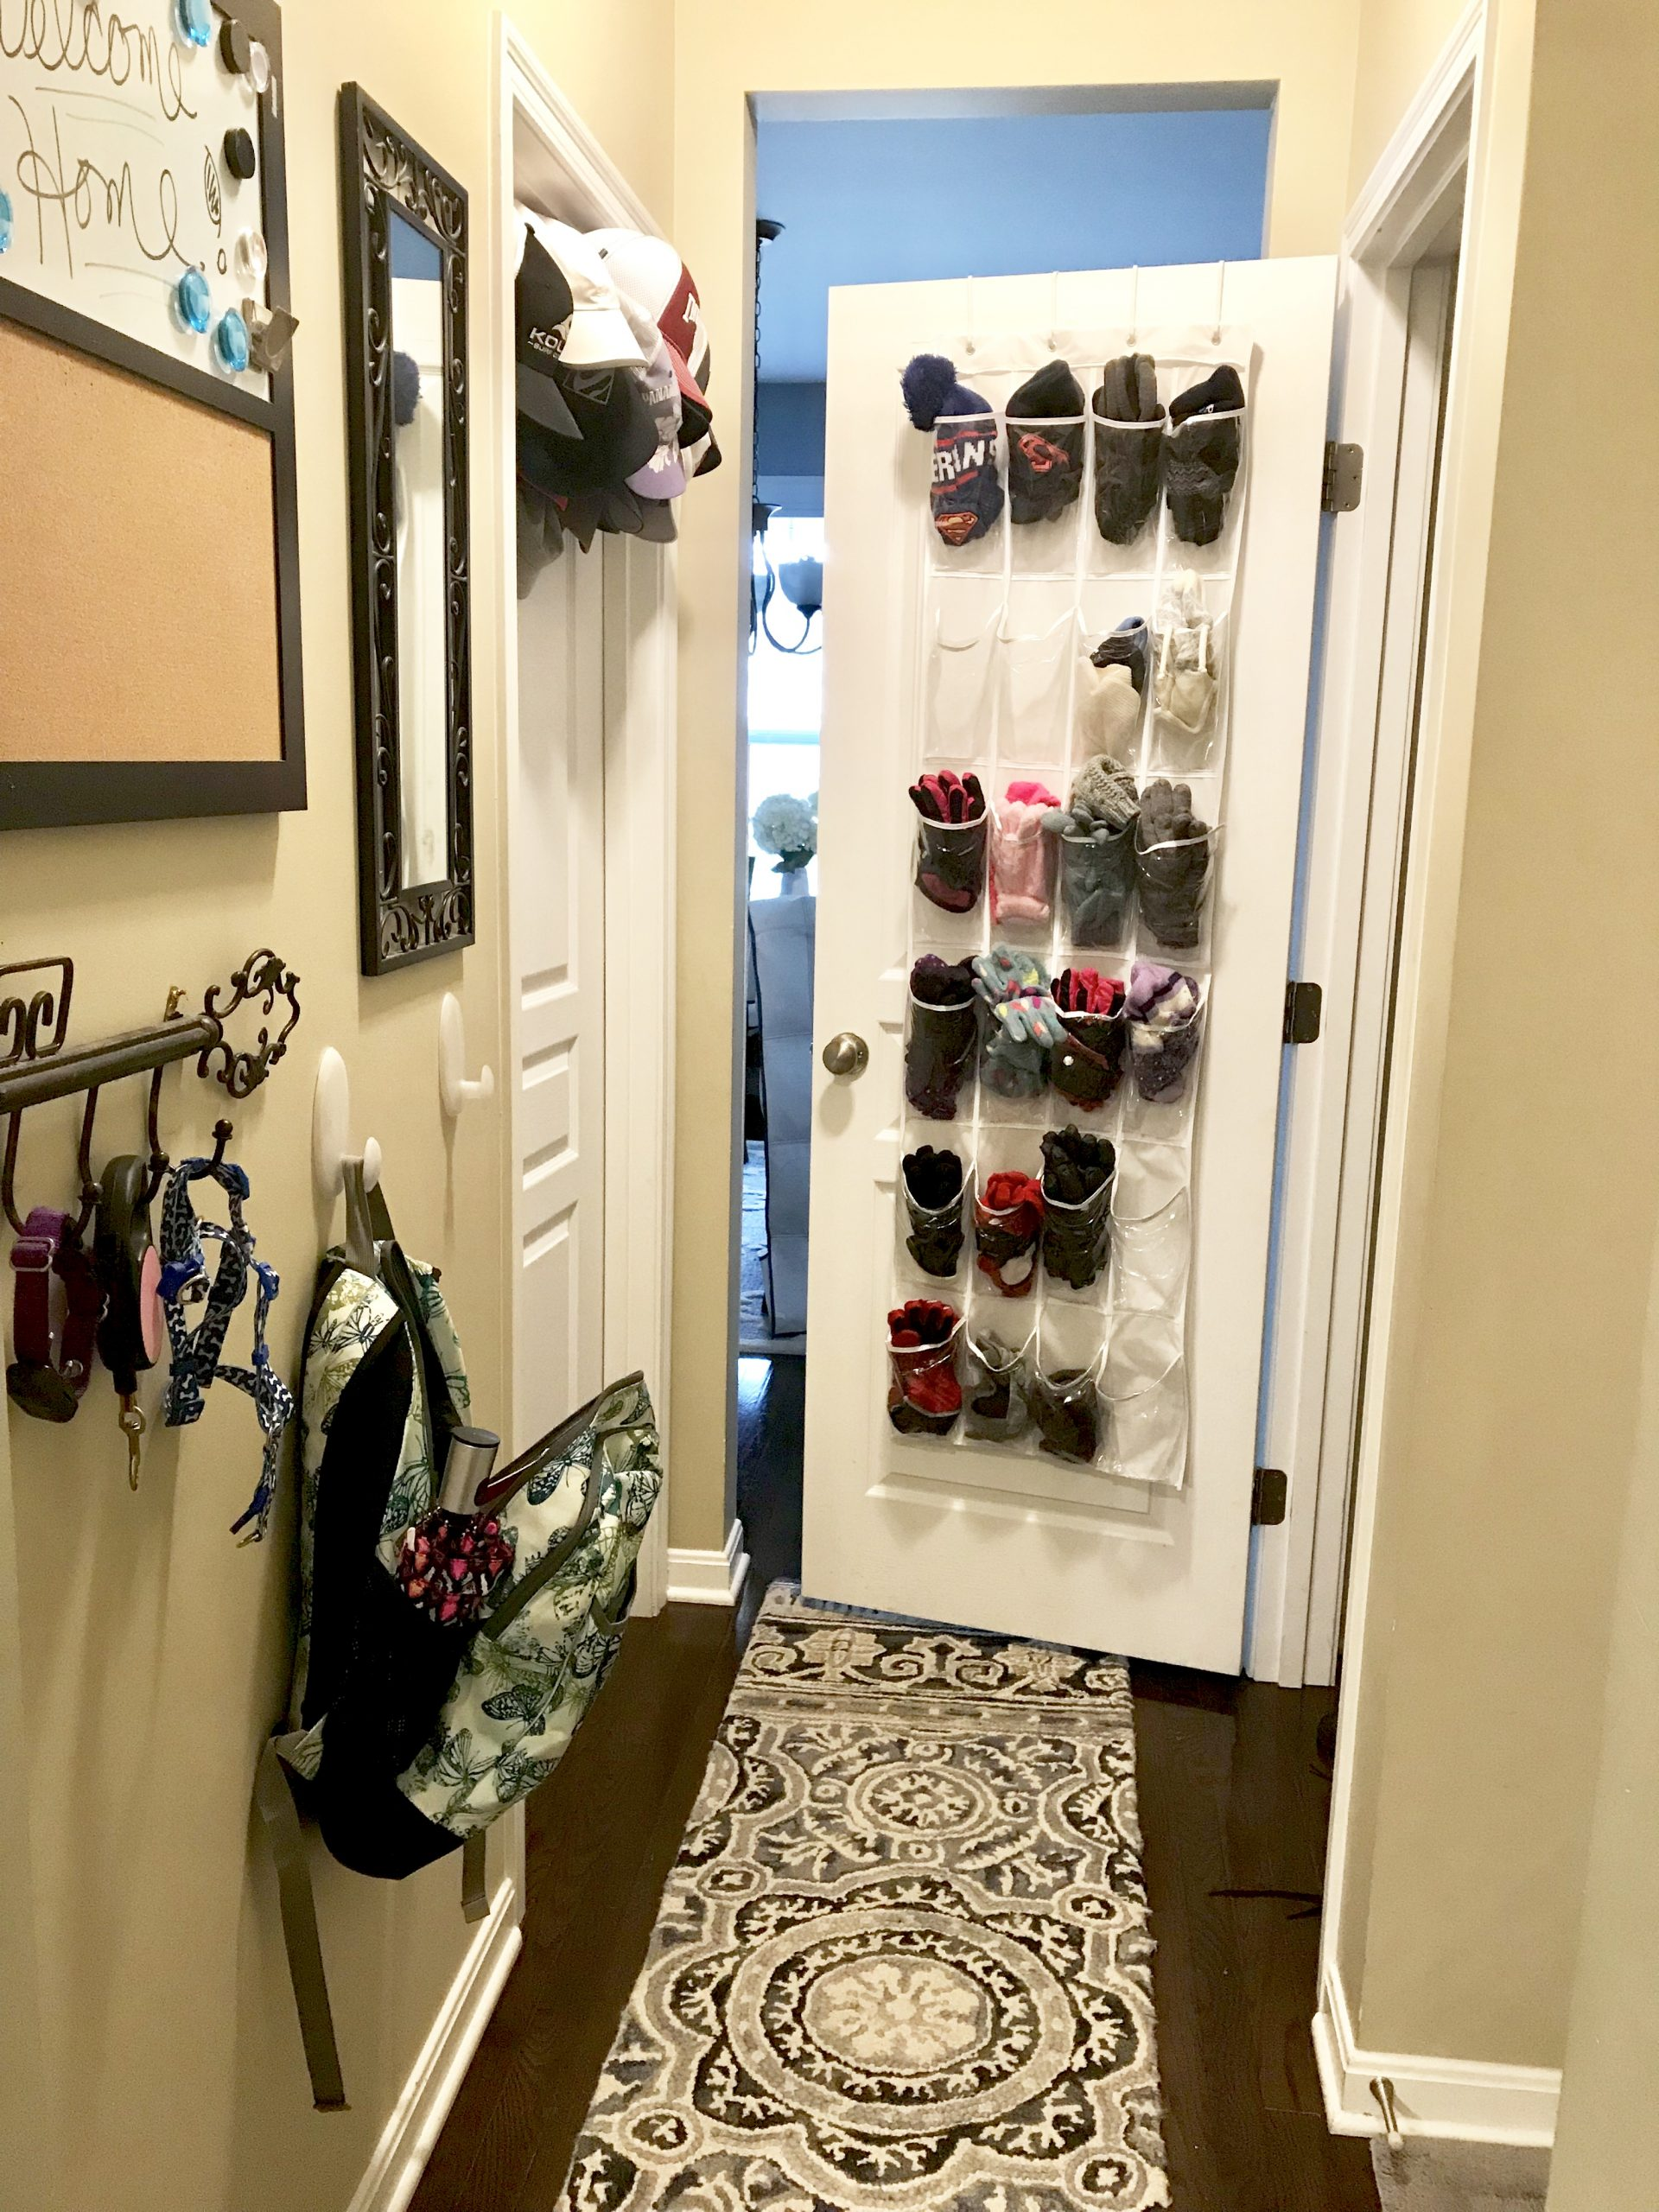 Organization Solutions for your entryway to get you out the door faster even with kids! And keep you productive! #momlife #productivity #organization #entryway #tips #hacks #solutions